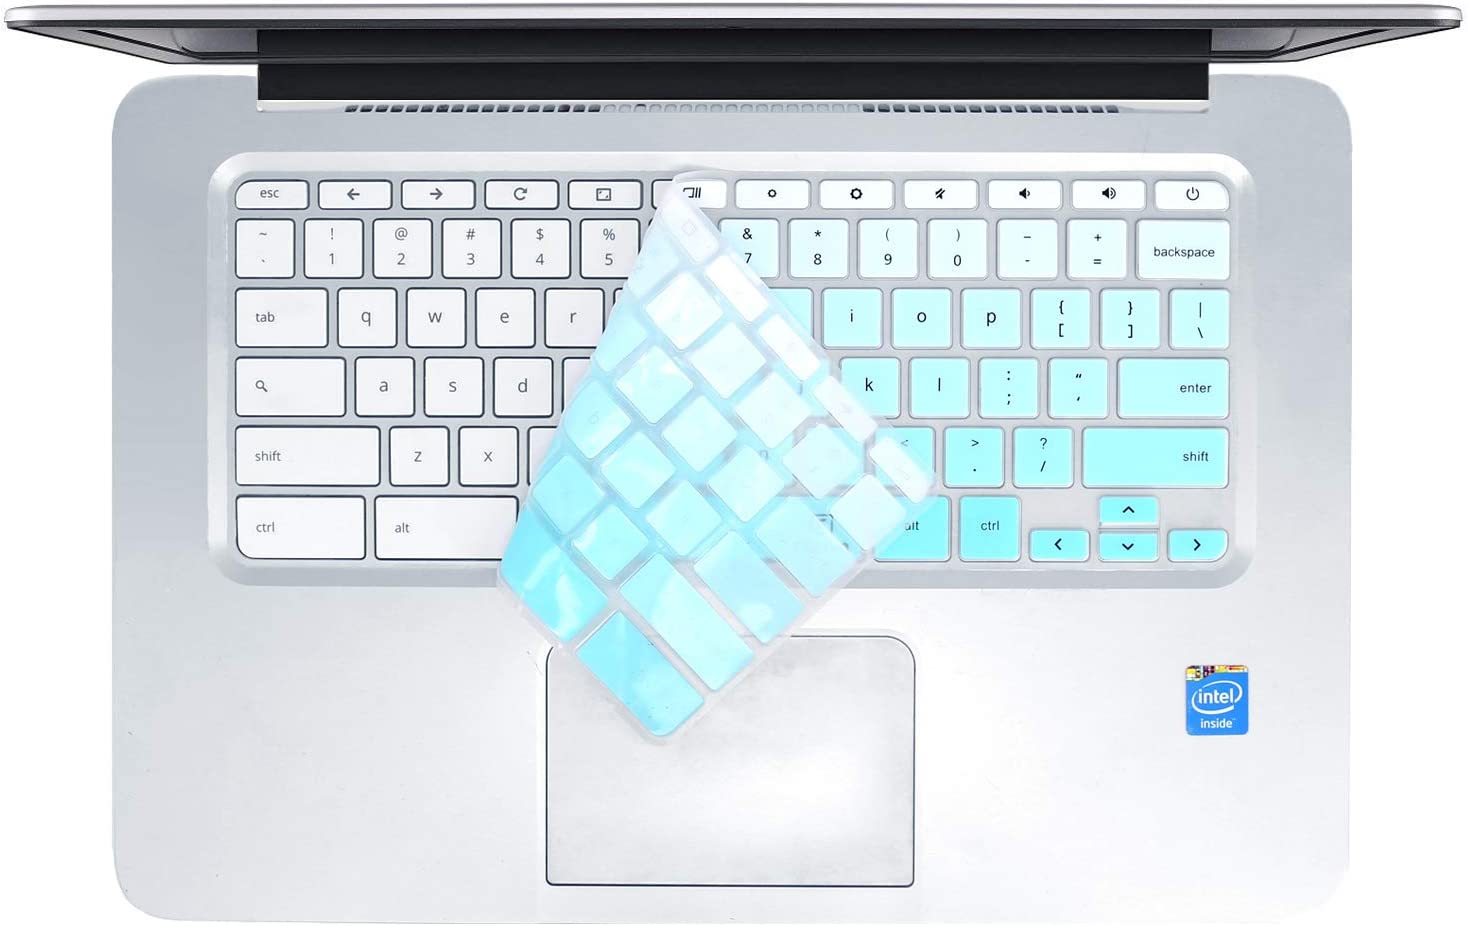 Ombre Hot Blue FORITO KeyboardCover Compatible with HP Chromebook 14 HP Chromebook 11 G1 G2 G3 G4 G5 G6 EE 11.6 Inch//HP Chromebook x360 11.6 ae Series//HP Chromebook 11 G6 EE 11.6 //HP Chromebook